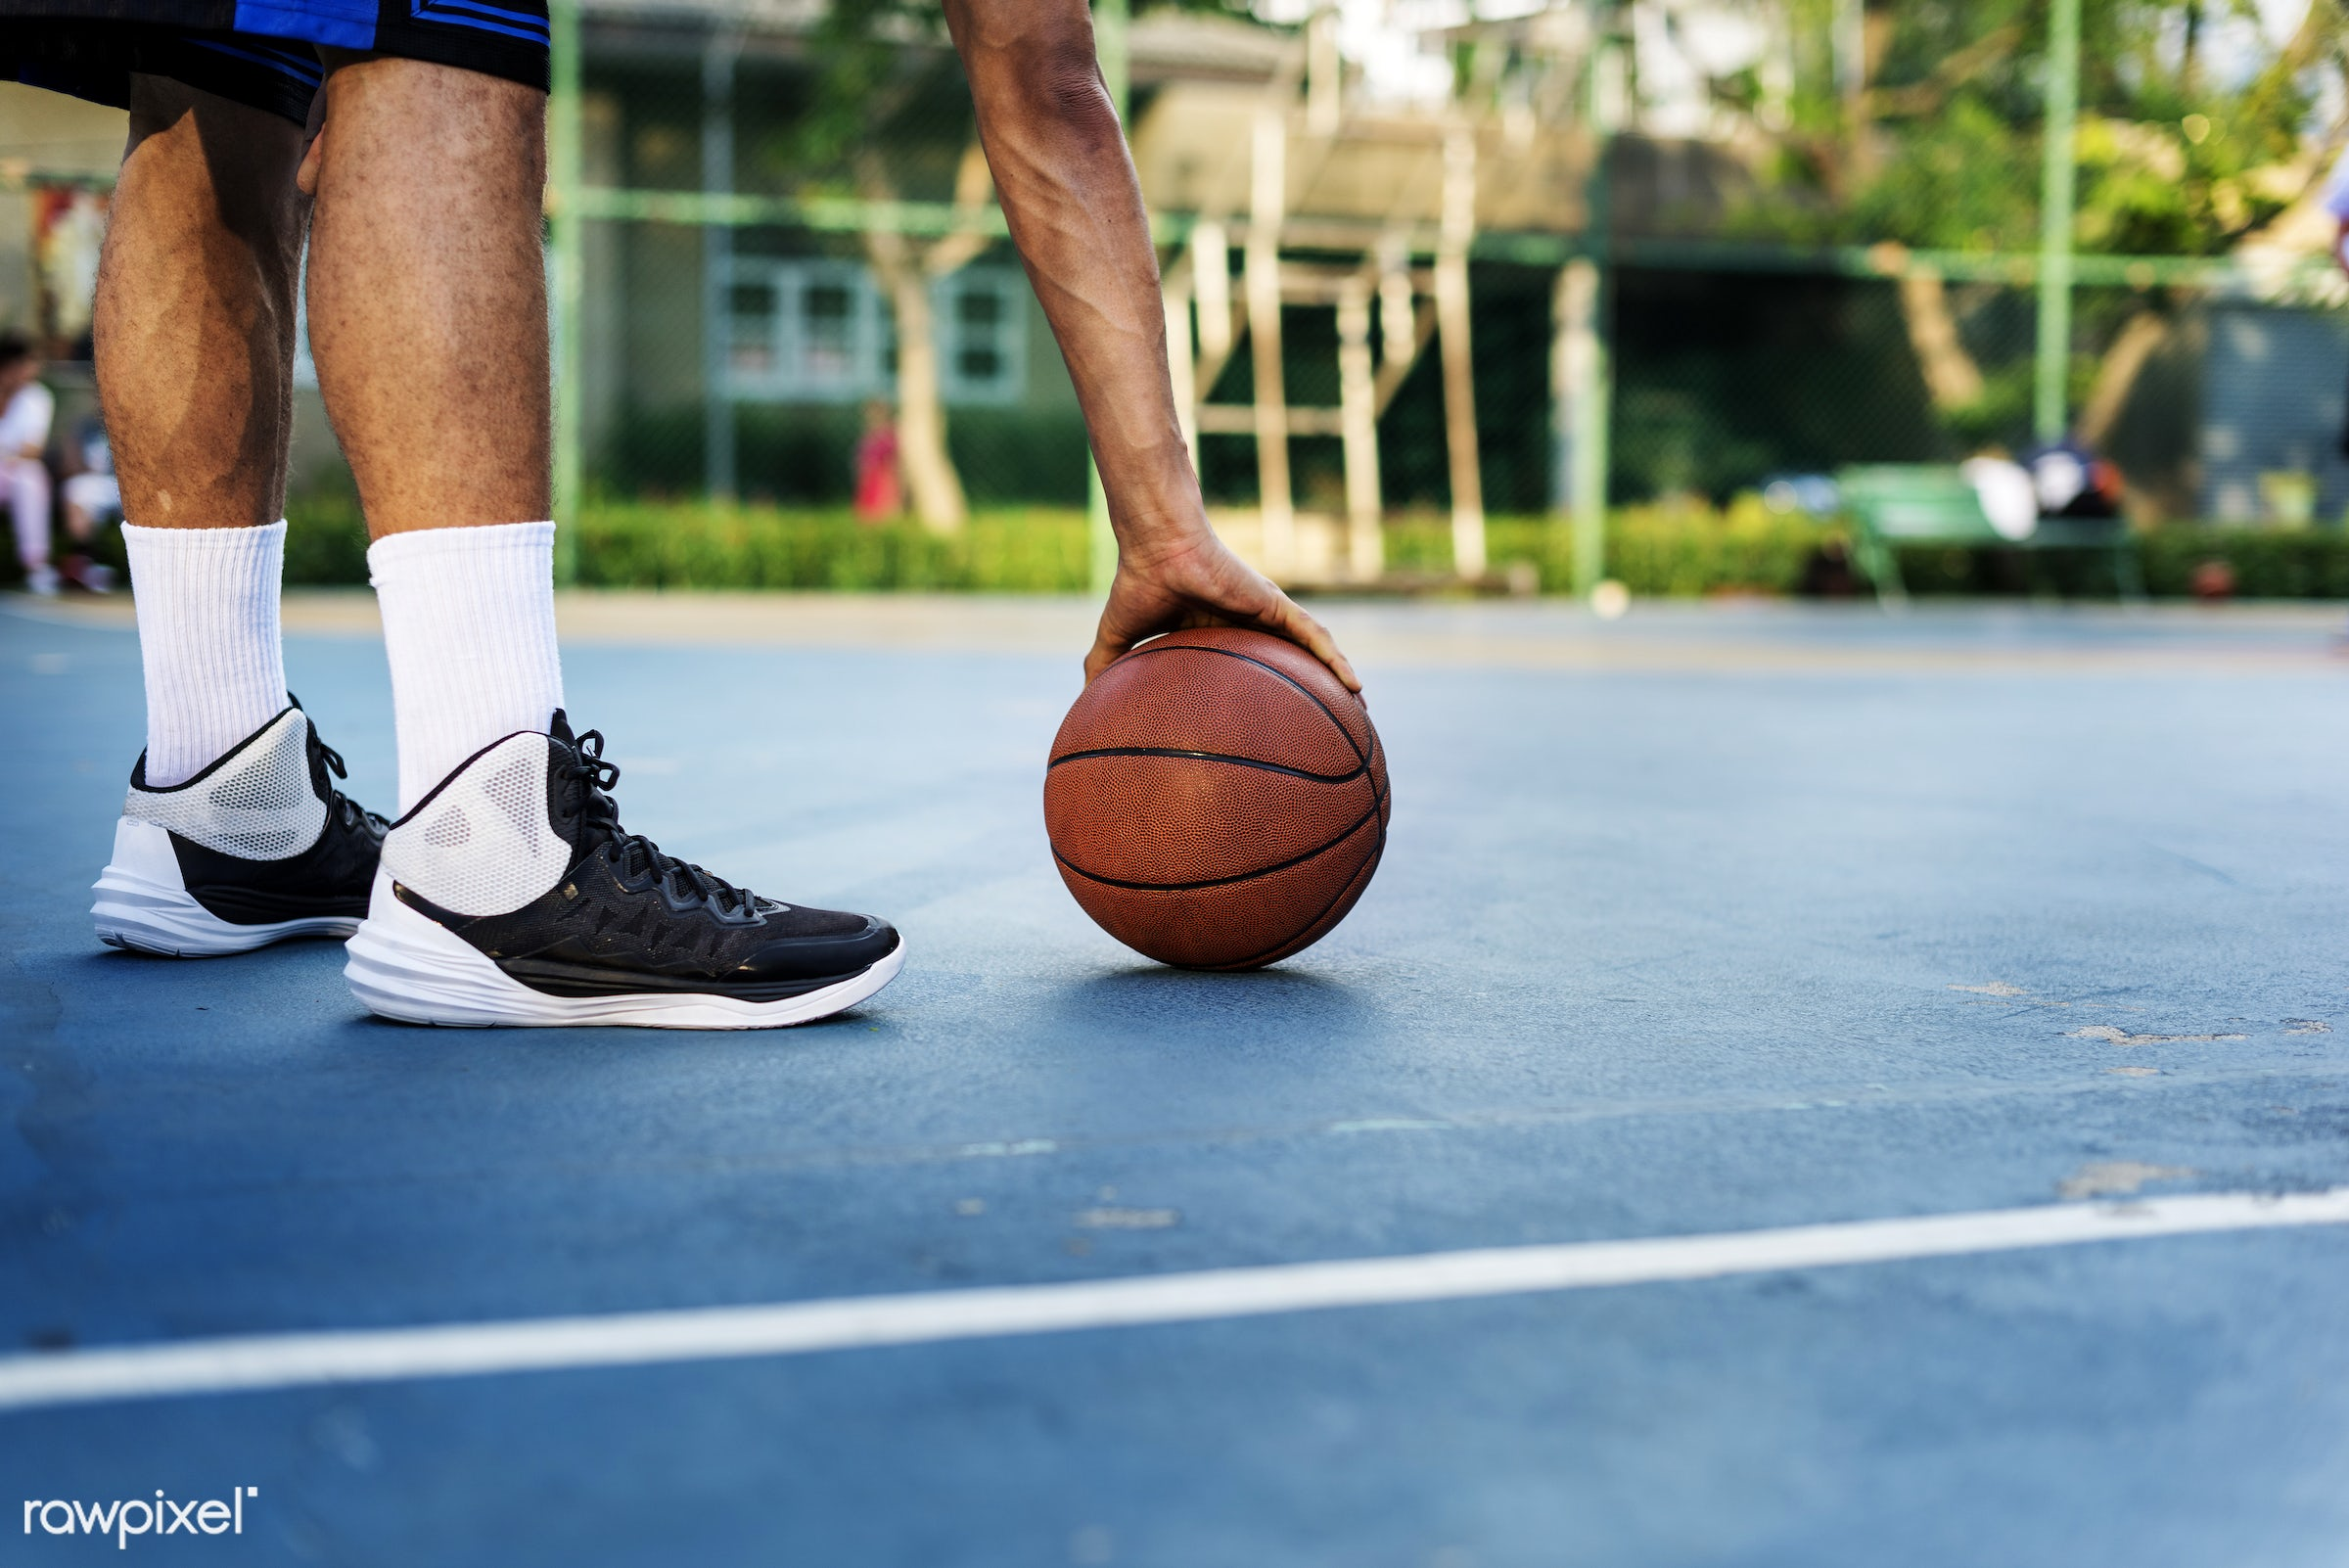 Young basketball player shoot - basketball, sport, court, game, strength, activity, boy, exercise, man, play, player,...